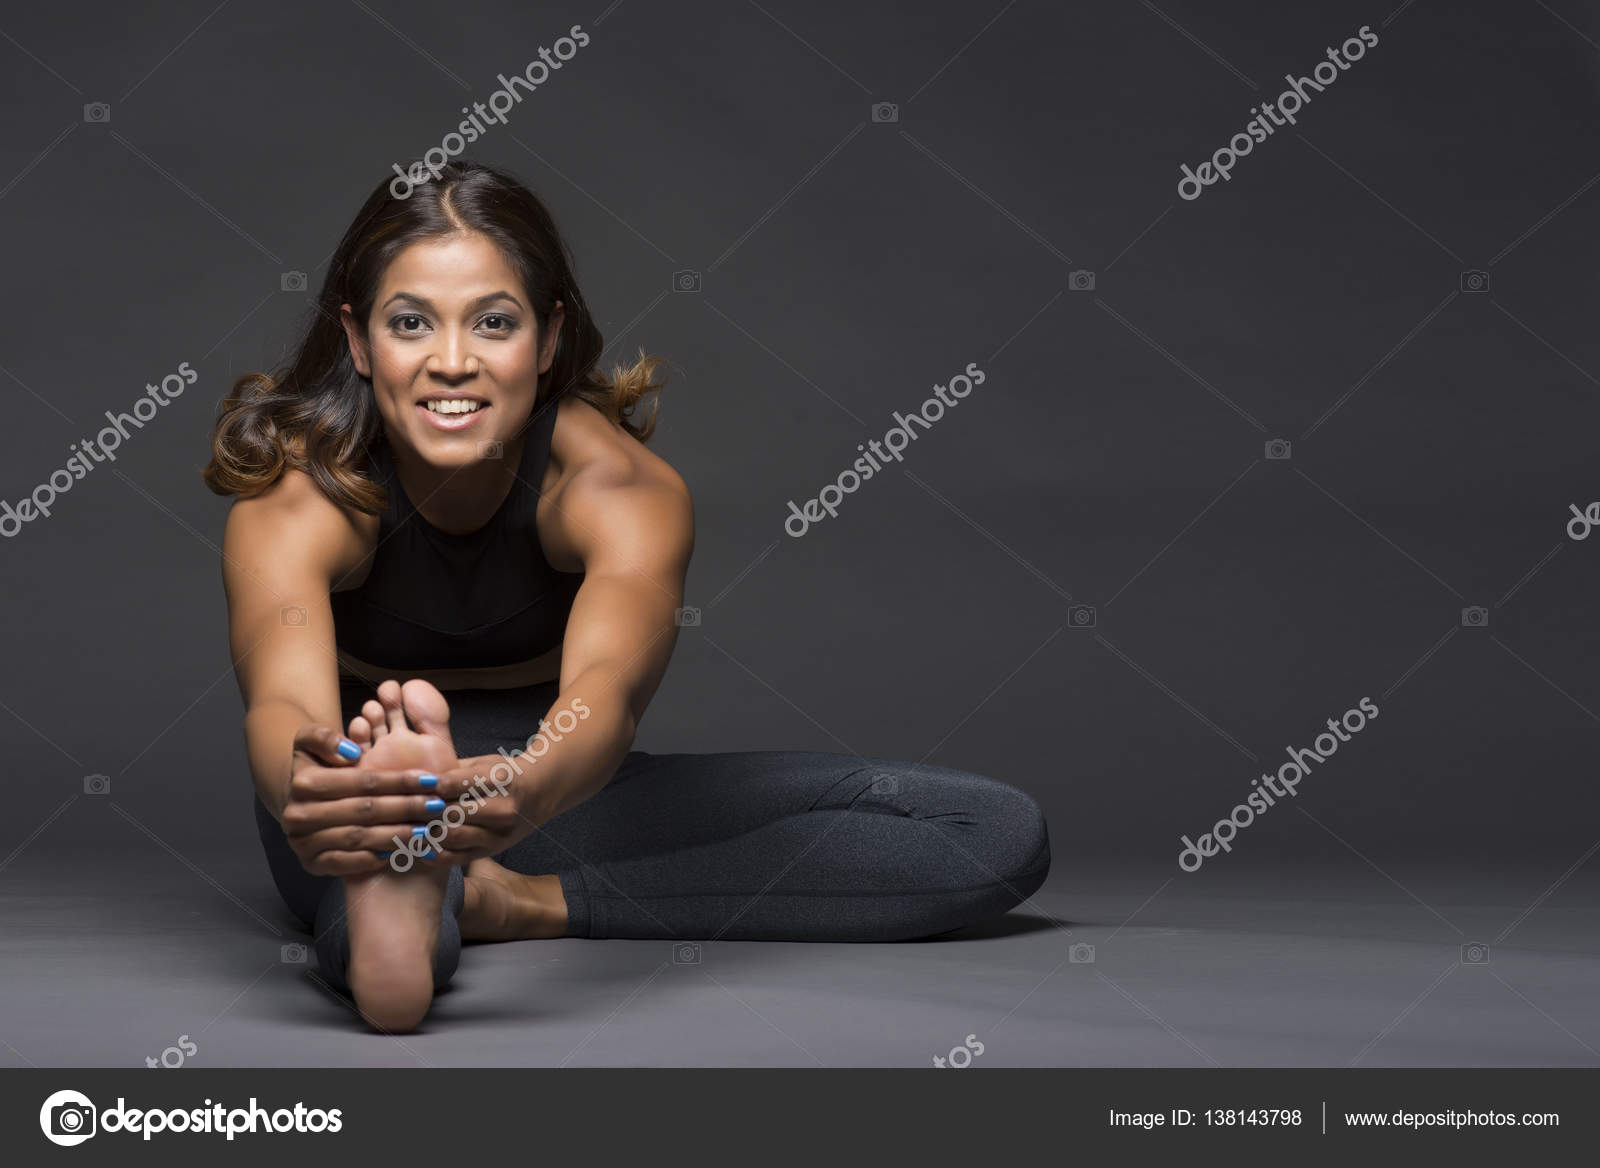 Beautiful Indian Woman In A Yoga Stretch Pose Smiling And Looking At The Camera Stock Photo C Paiken 138143798